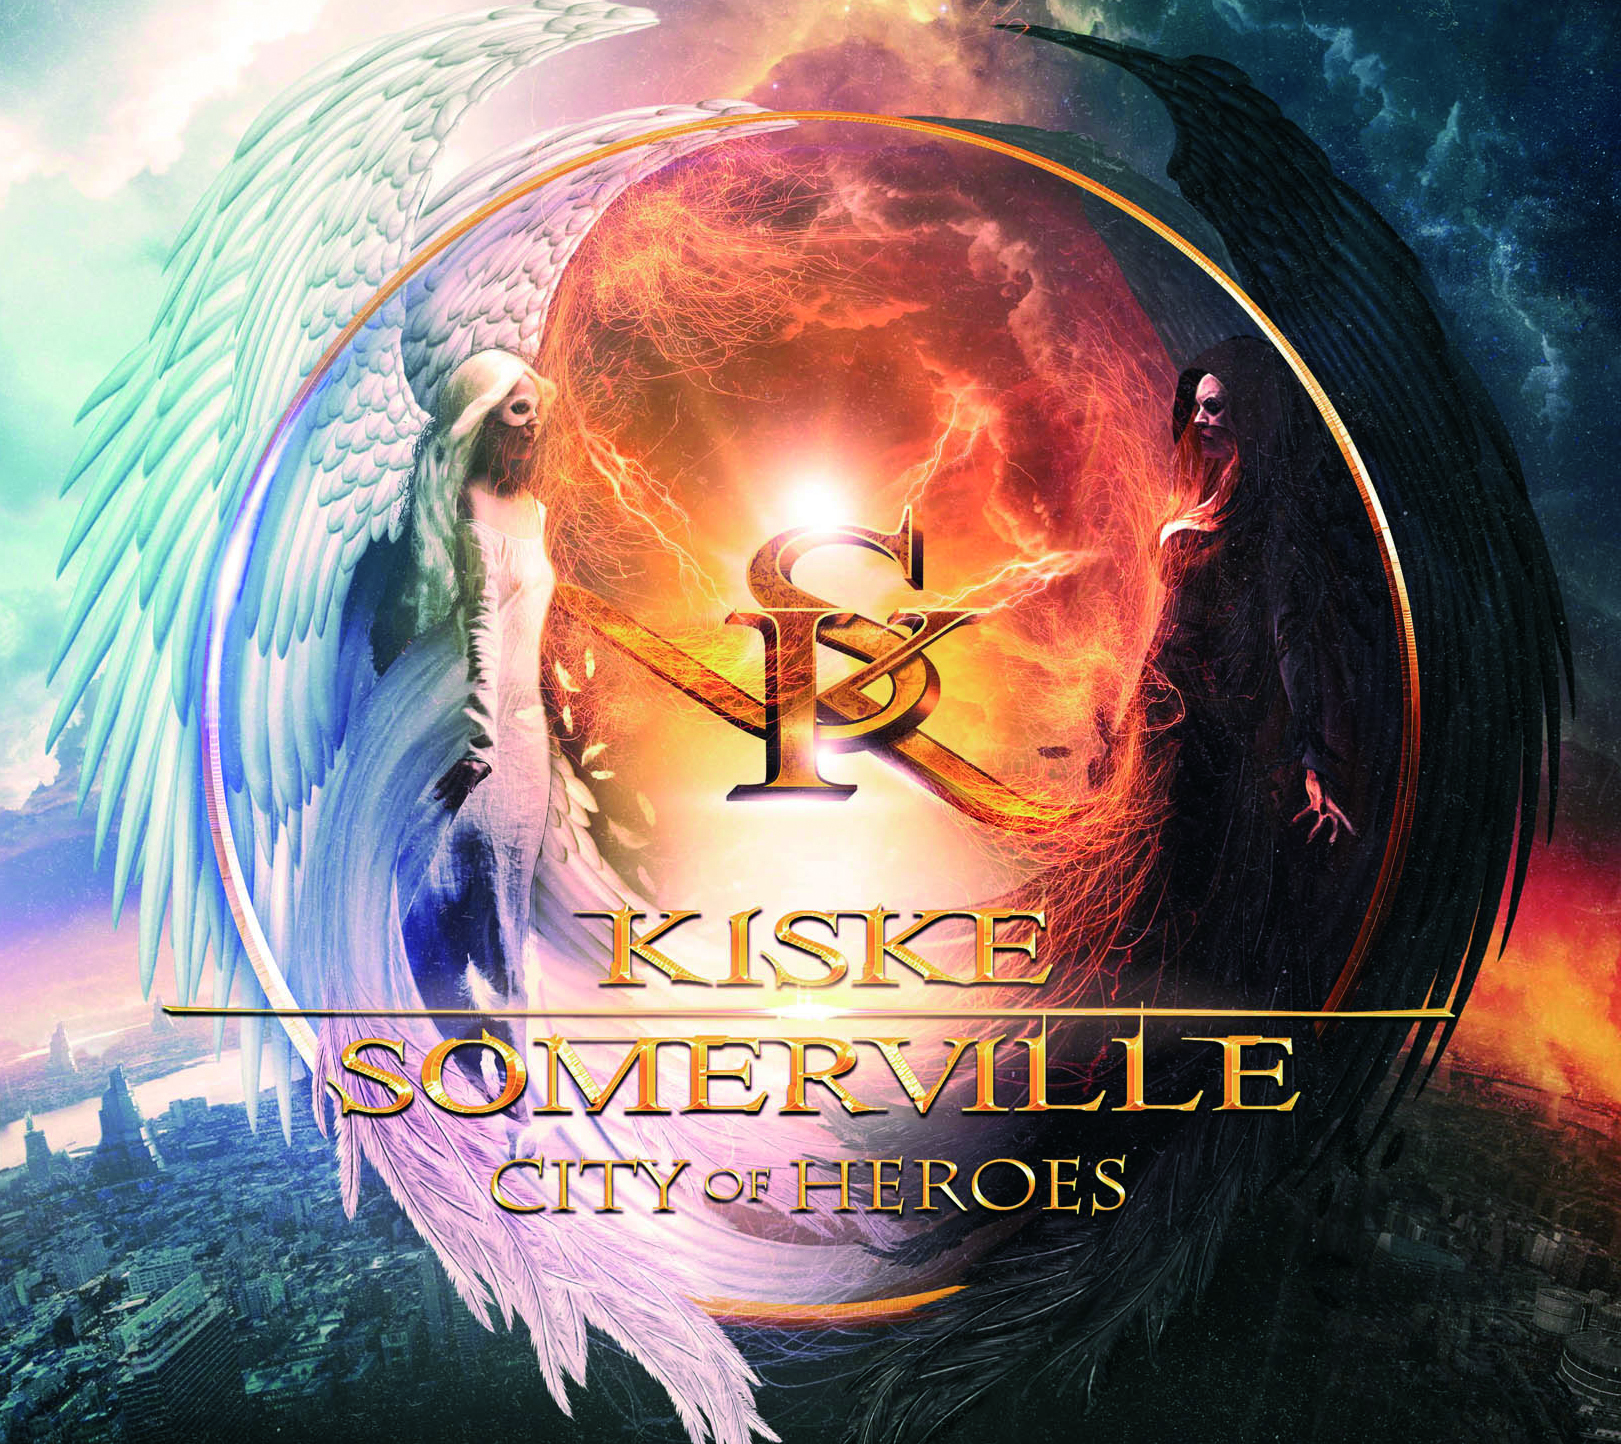 Kiske/Somerville – City of Heroes Review